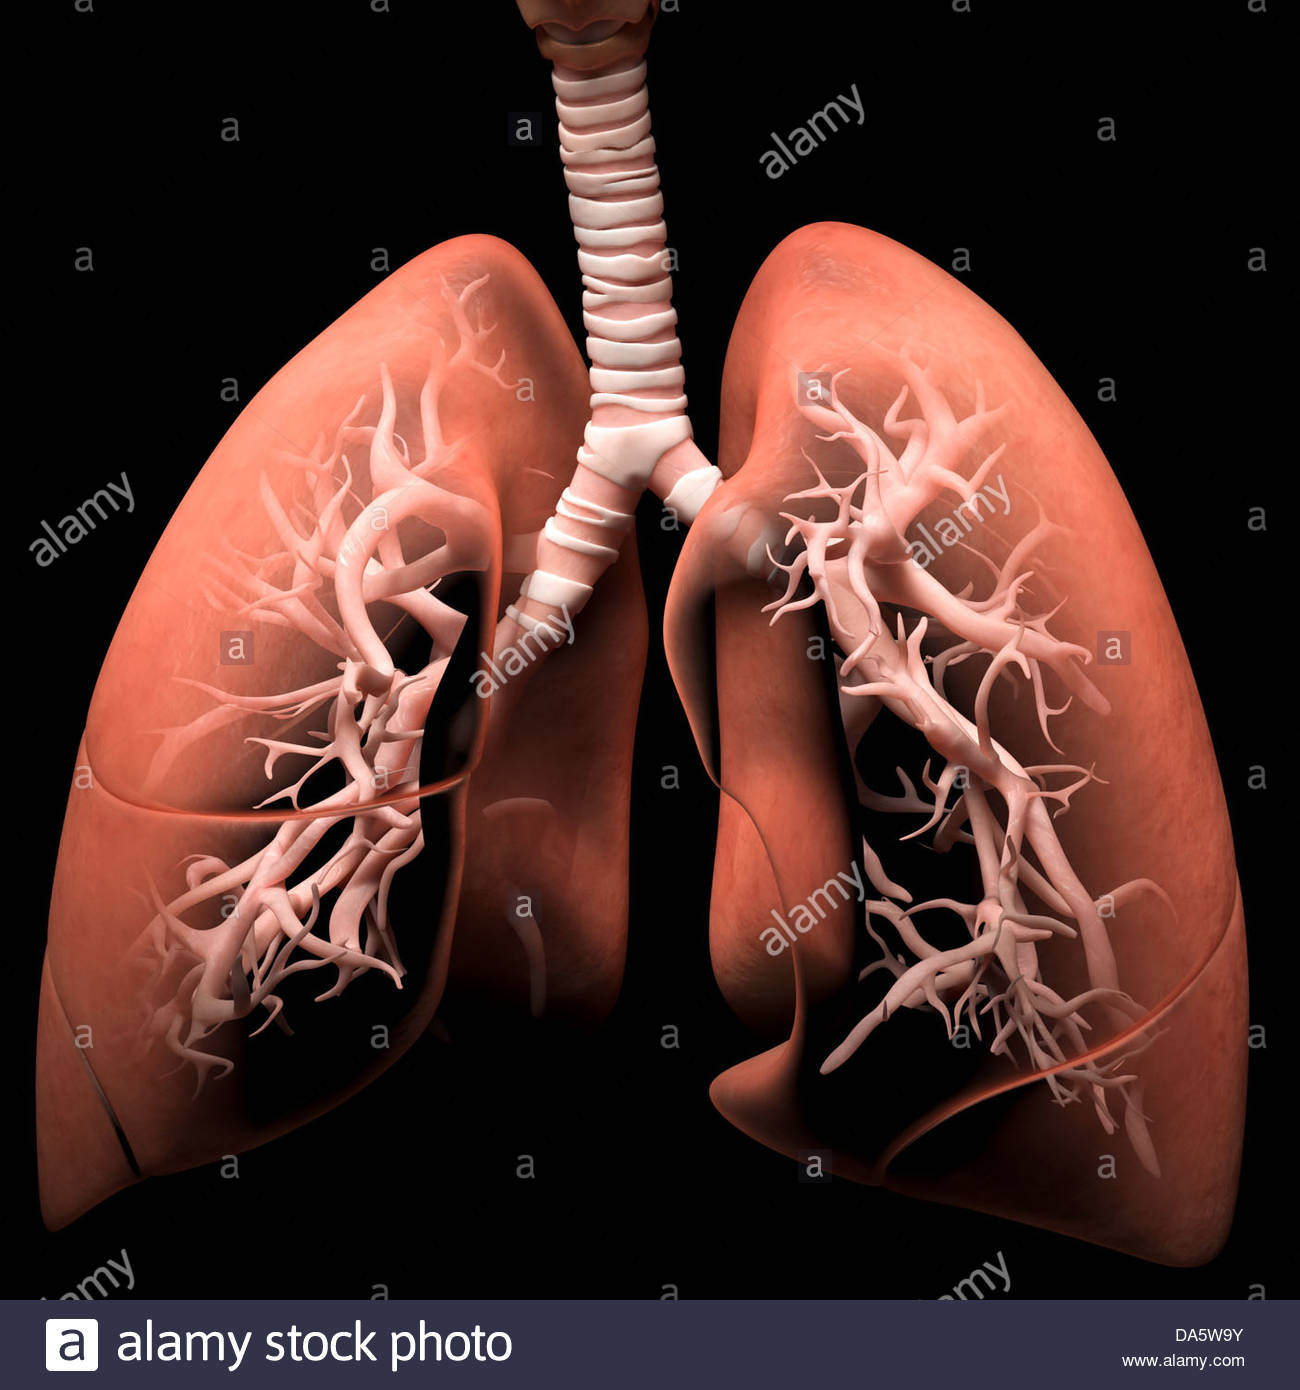 Digital medical illustration depicting the human respiratory system. Transparent lungs reveal the trachea and bronchi. - Stock Image